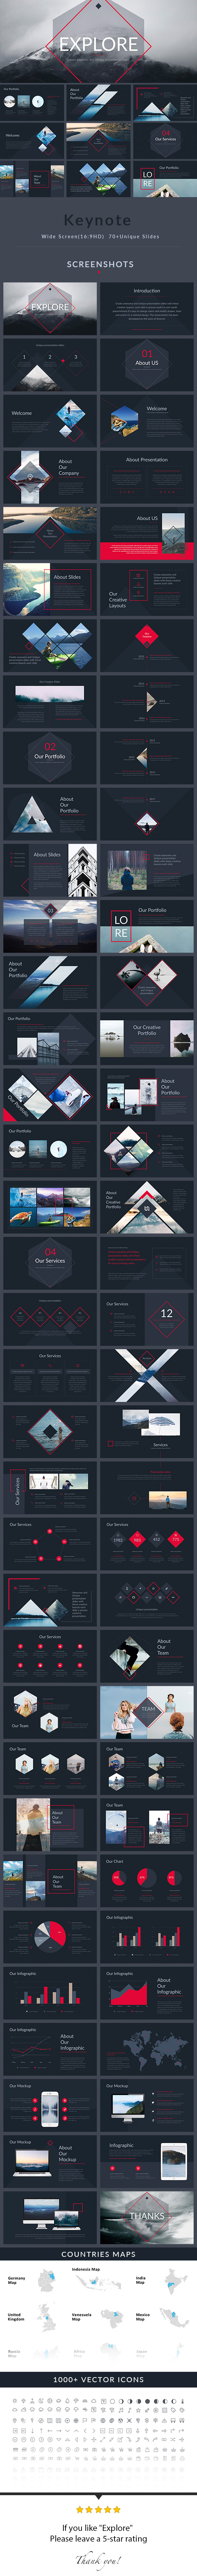 Explore - Keynote Presentation Template - Creative Keynote Templates